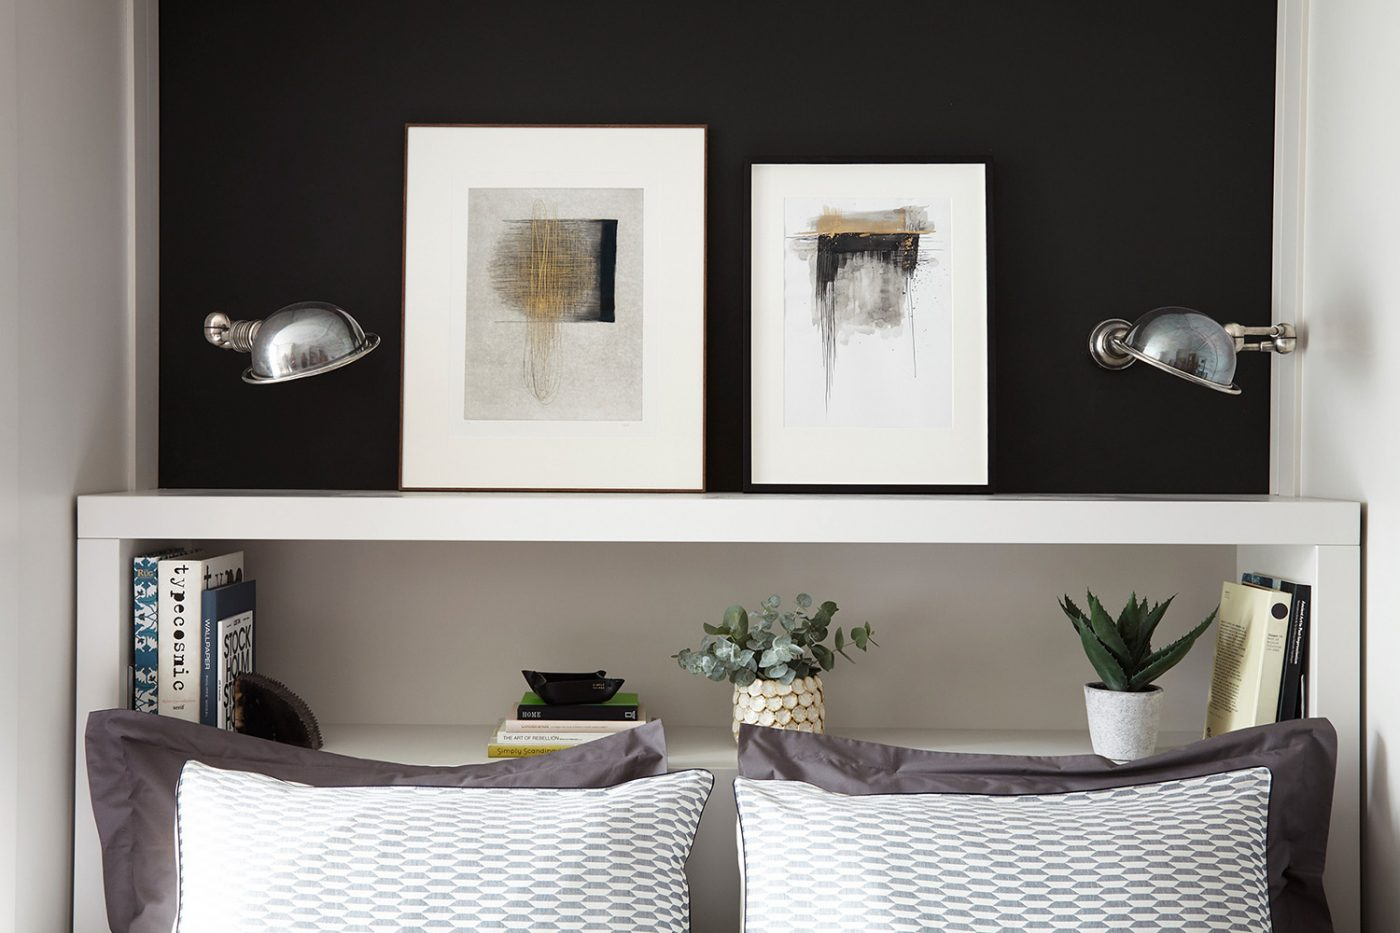 regents-park-london-apartment-interiors-design-anna-burles-fresh-cool-modern-bedroom-art-frames-shelf-2-crop